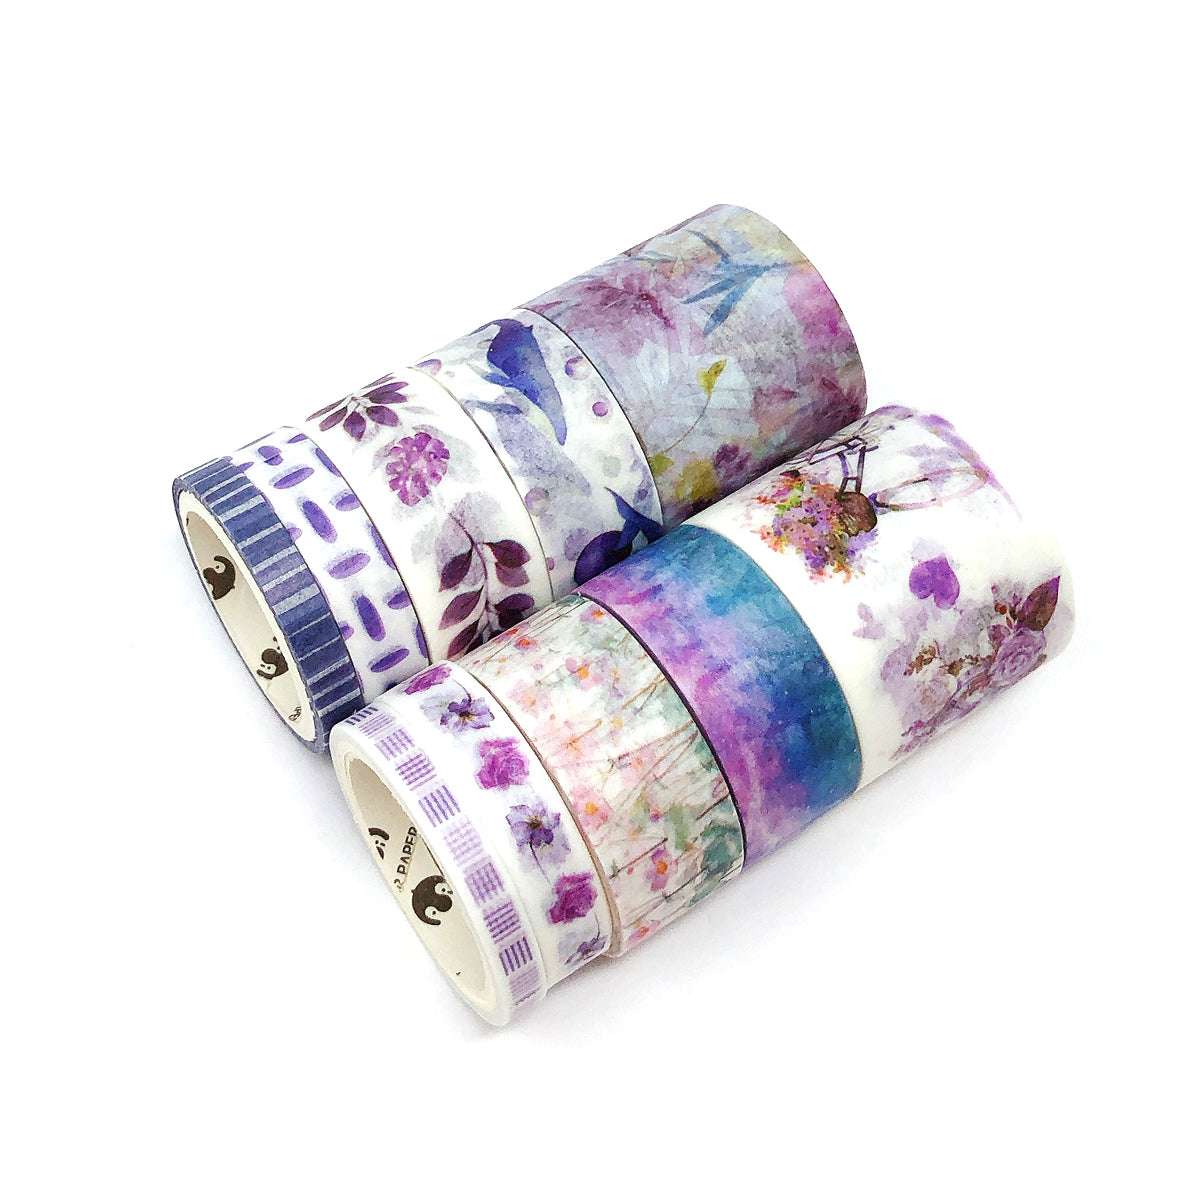 Wrapables Decorative Washi Tape Box Set (10 Rolls)